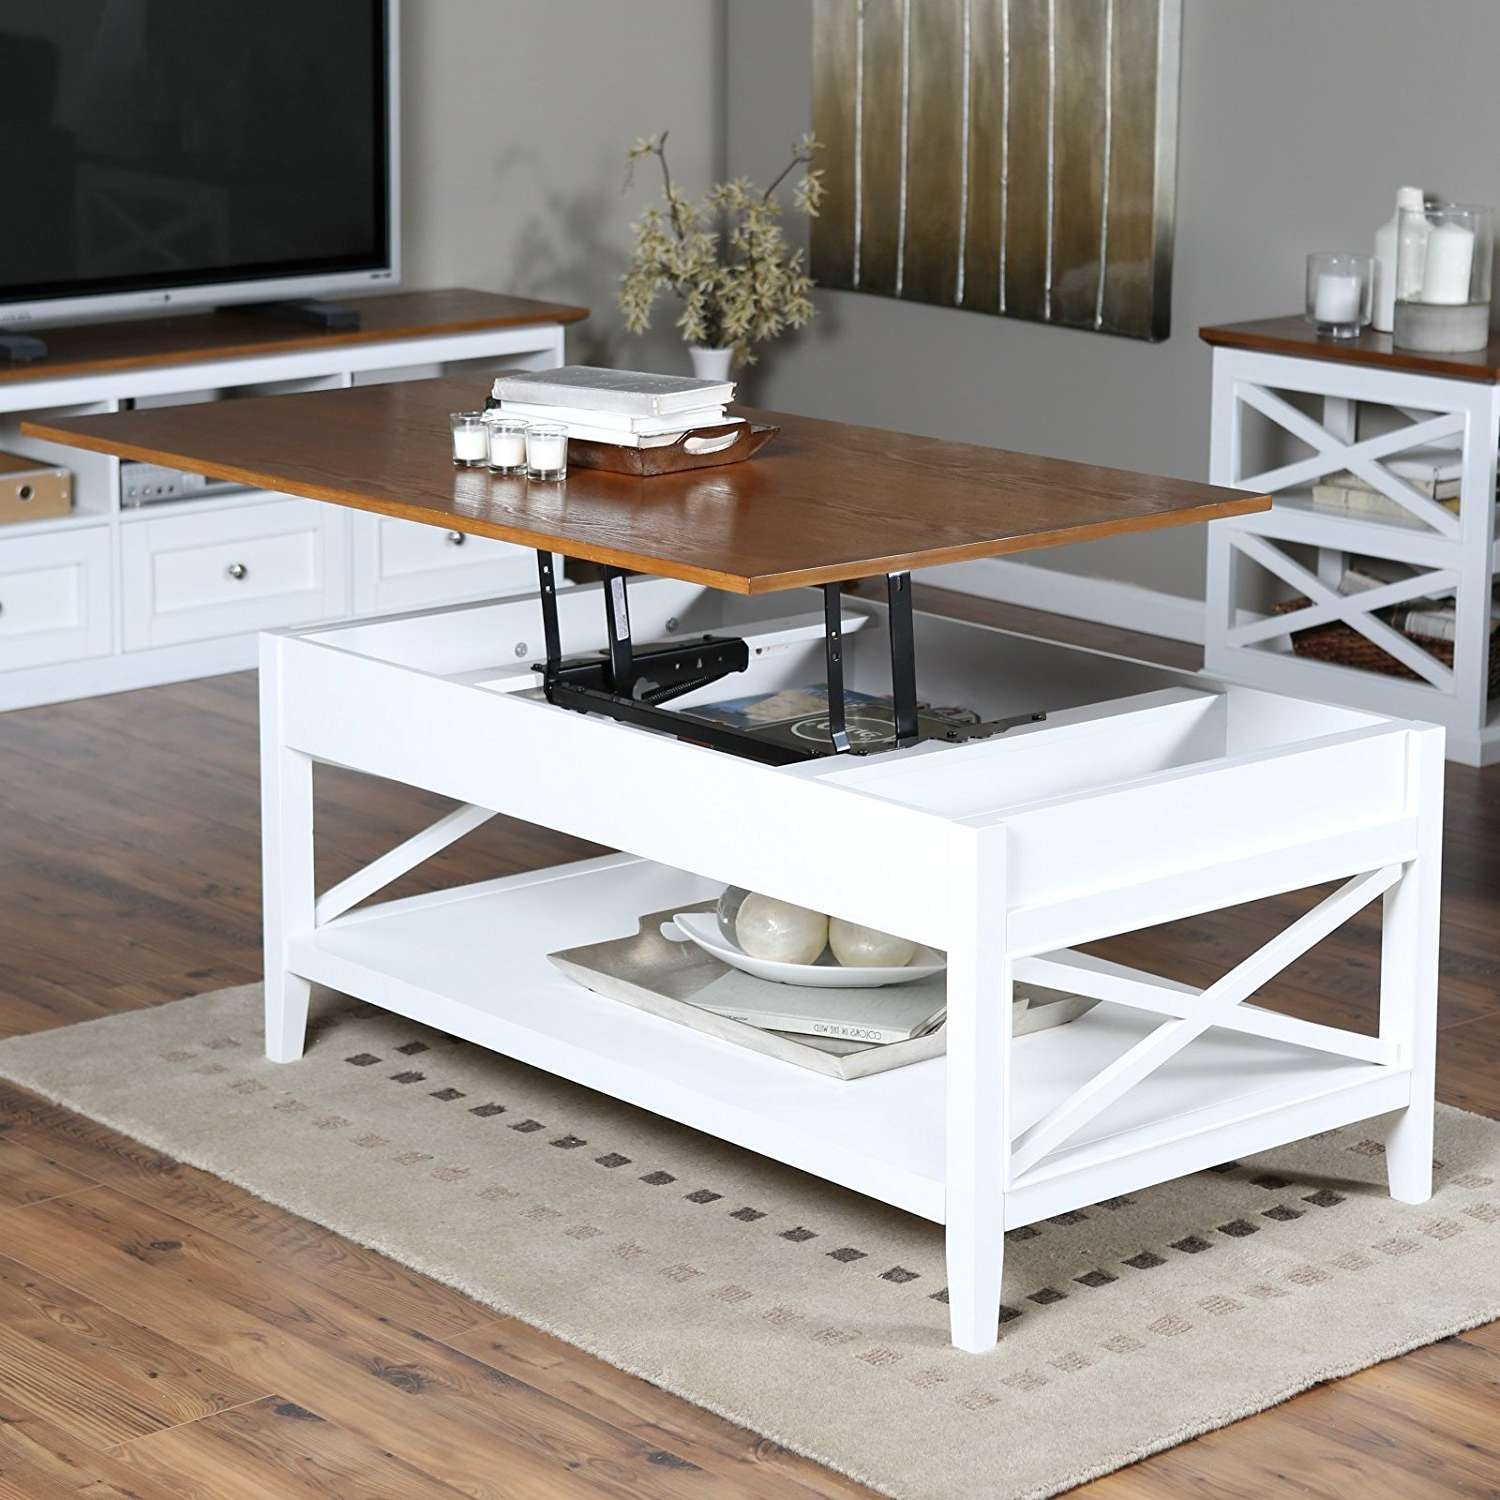 Coffee Tables : White Coffee Table Lift Top Round Glass Square For Fashionable Coffee Tables With Raisable Top (View 20 of 20)